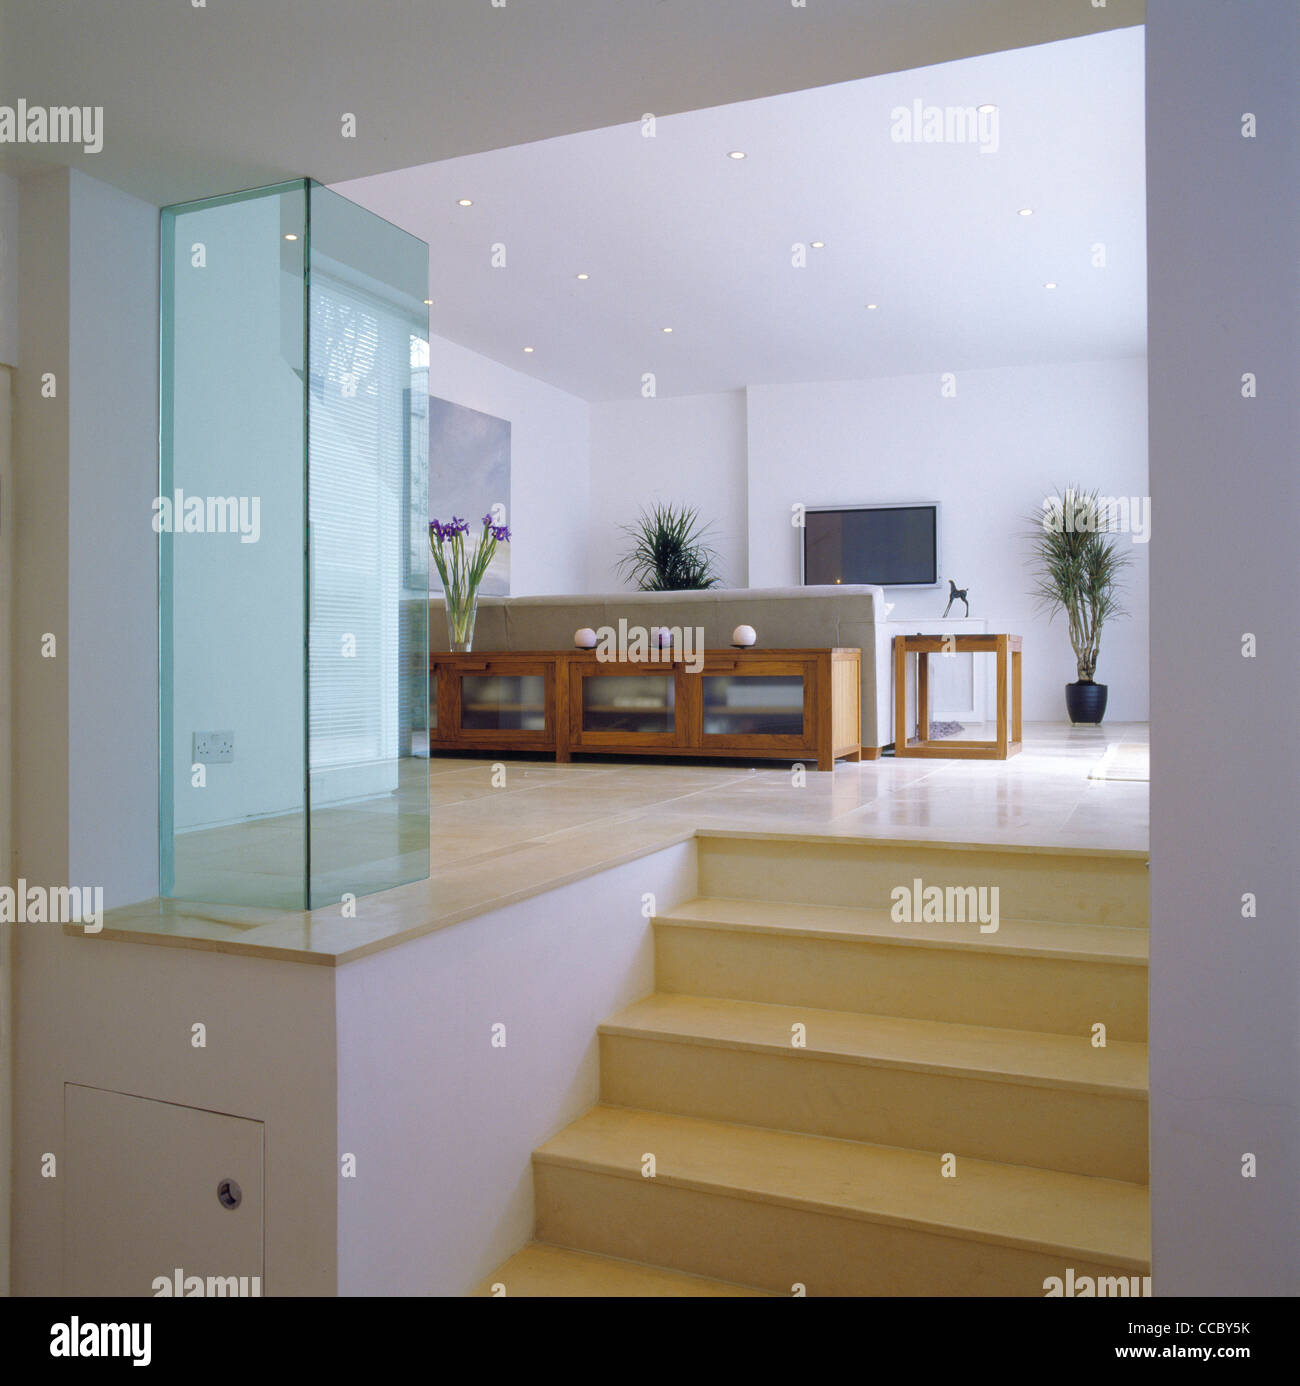 PRIVATE HOUSE STAIRS THROUGH TO LIVING ROOM - Stock Image